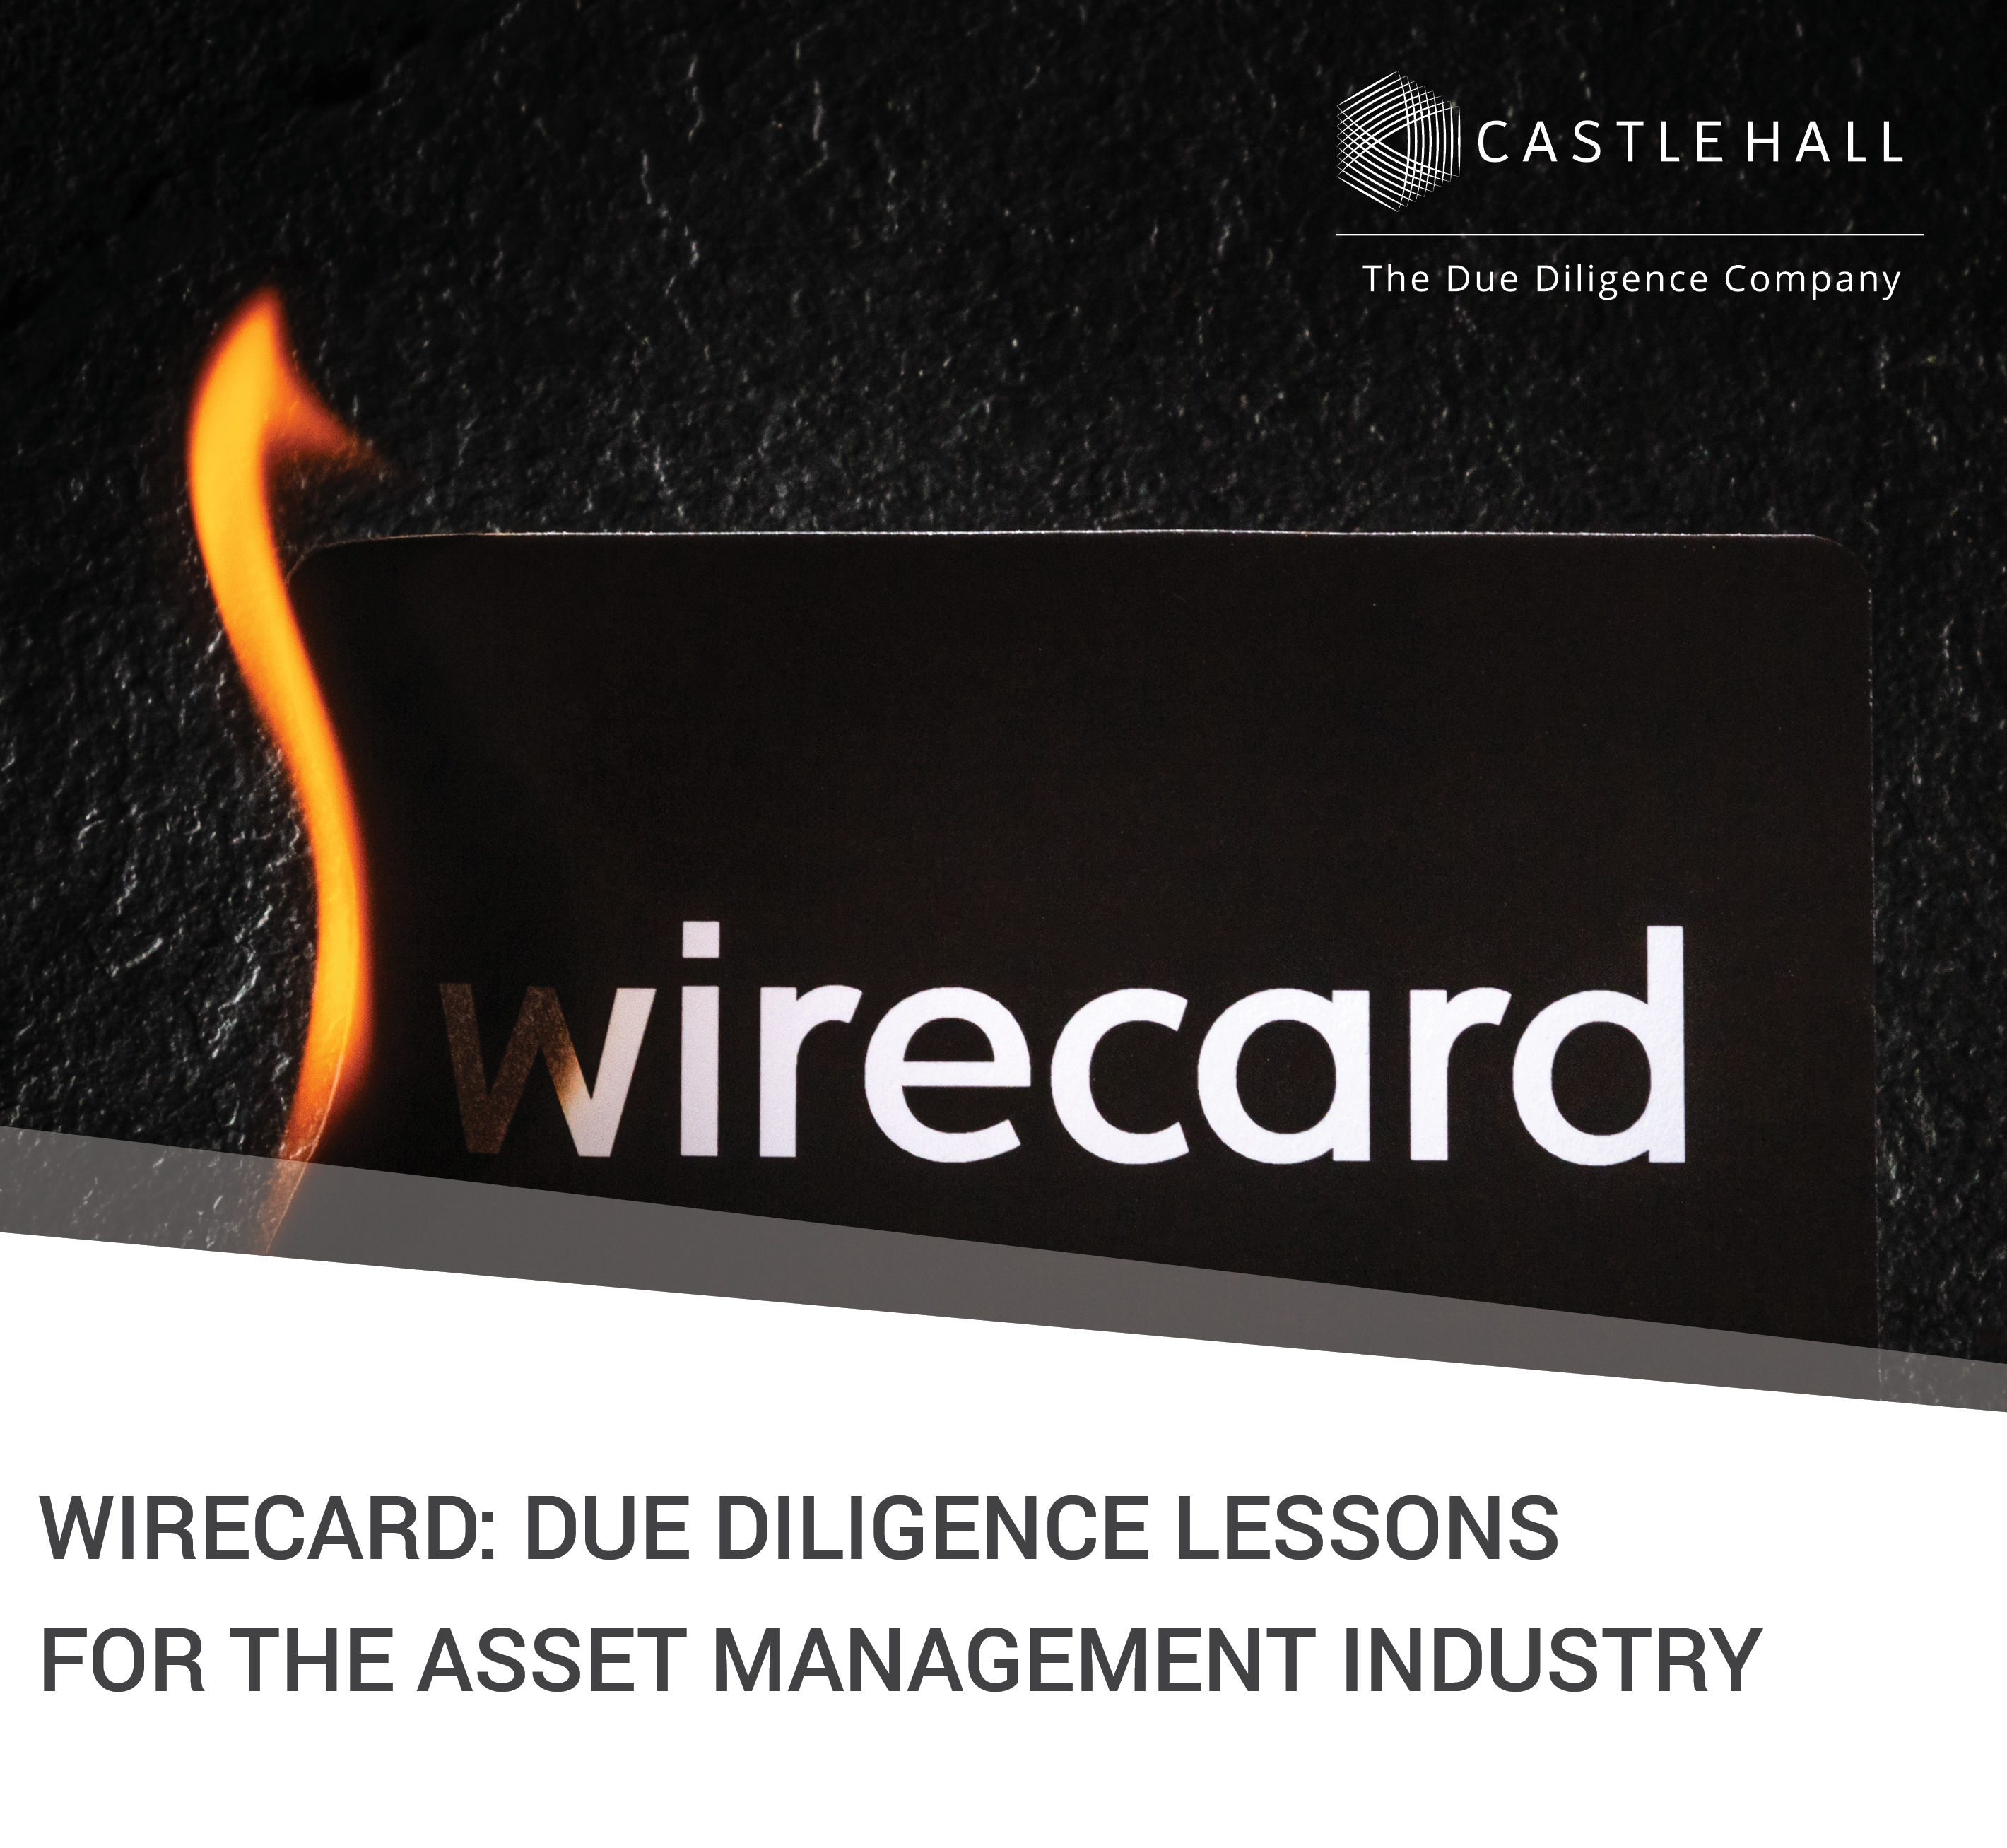 wirecard page